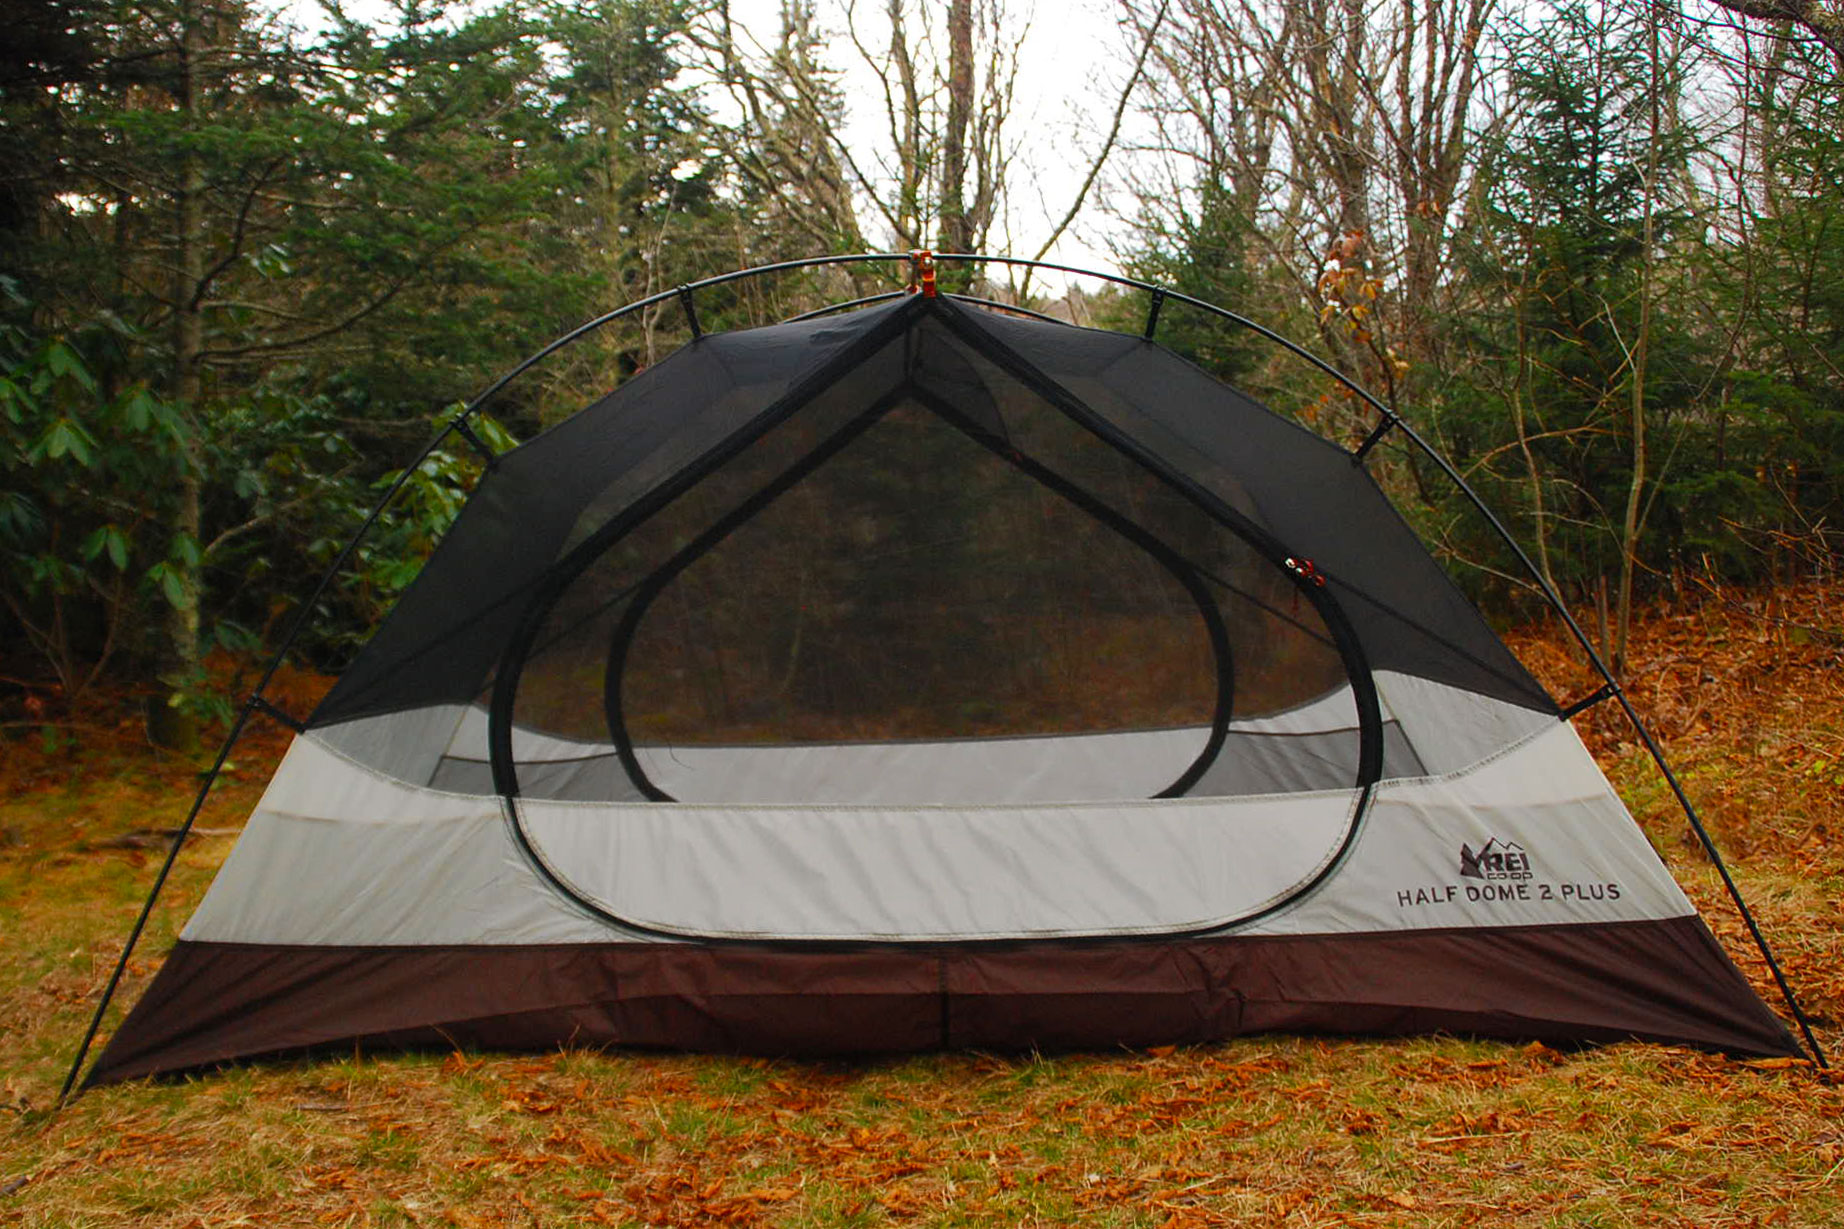 November 7 2017 First Look REIu0027s u0027Iconicu0027 Half Dome Tents Get 2018 Facelift & Connect-Together u0027Qubeu0027 Tents For Modular Camping